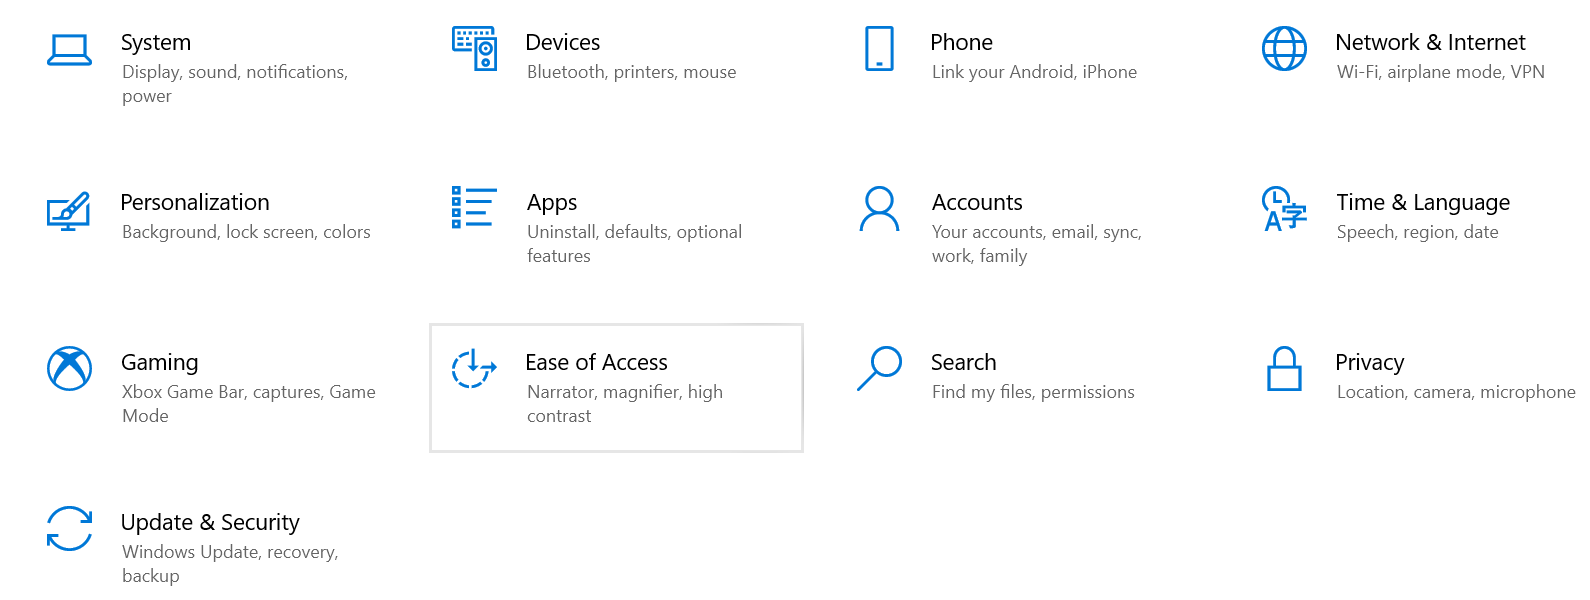 Ease of Access option